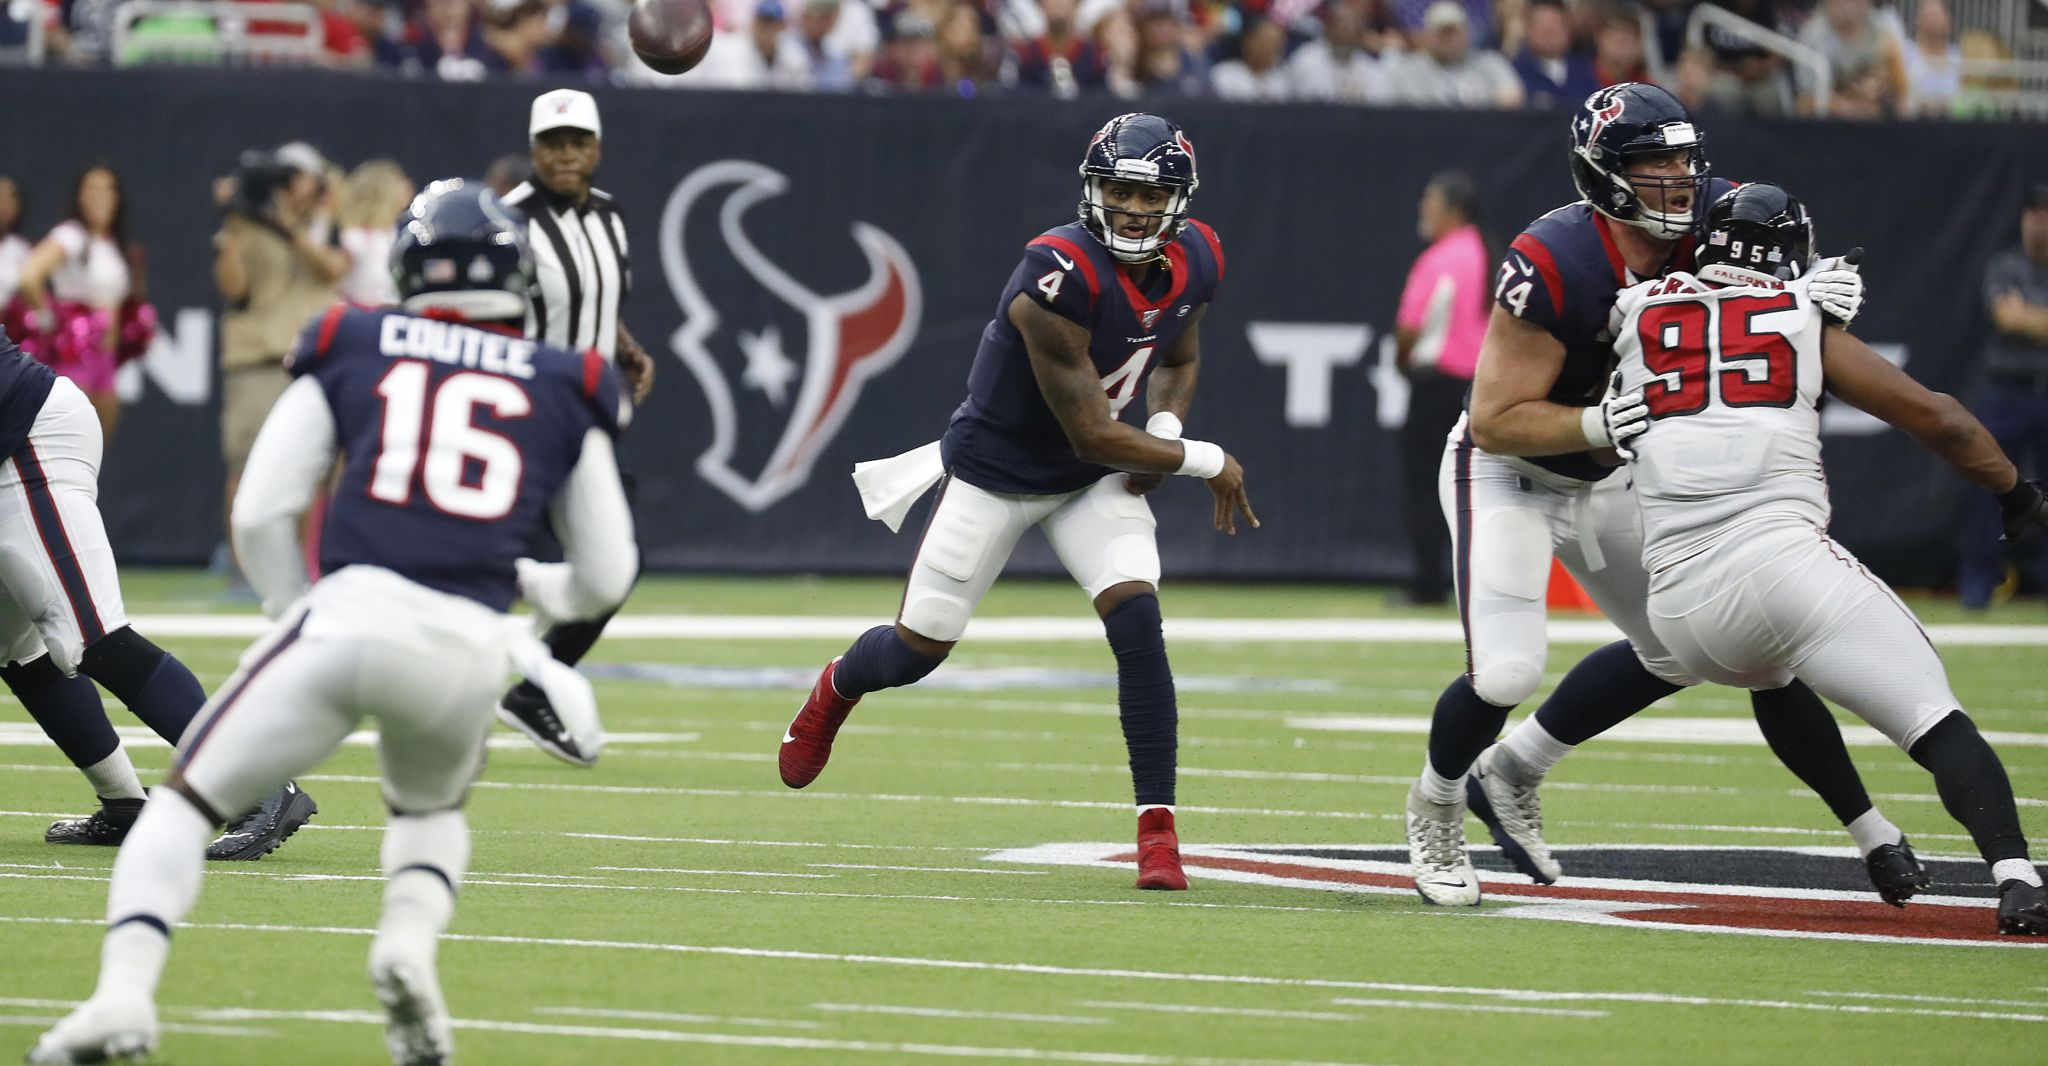 Texans takeaways: On Watson, the offensive line and RBs